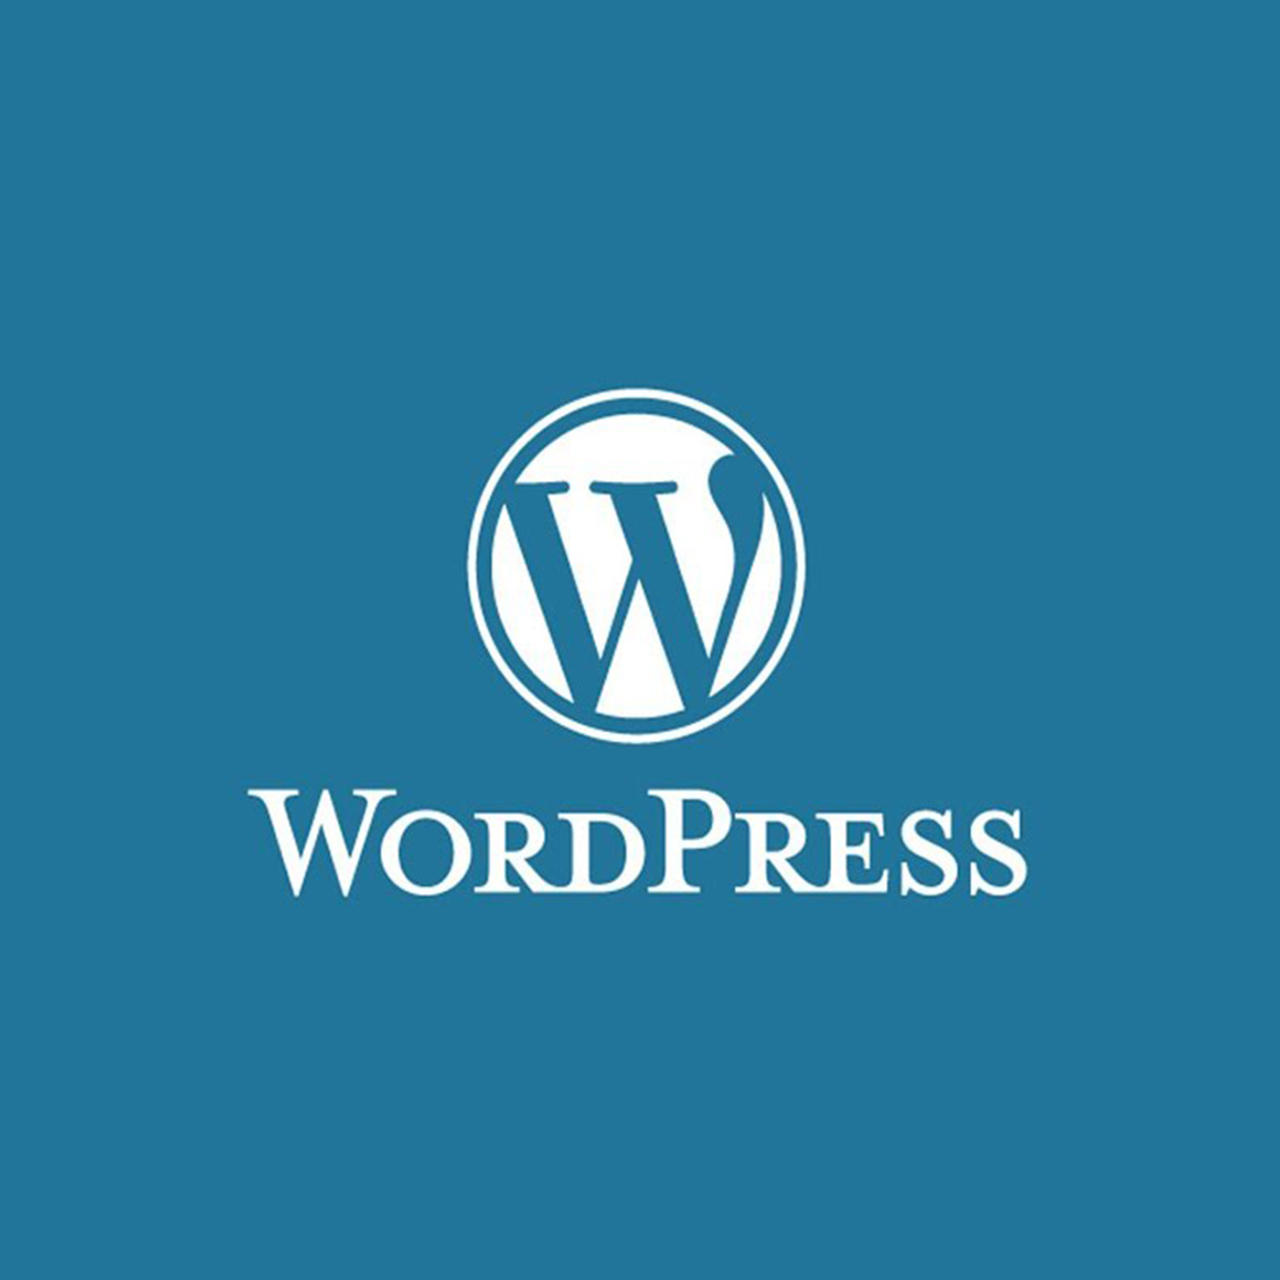 wordpress-square.jpg